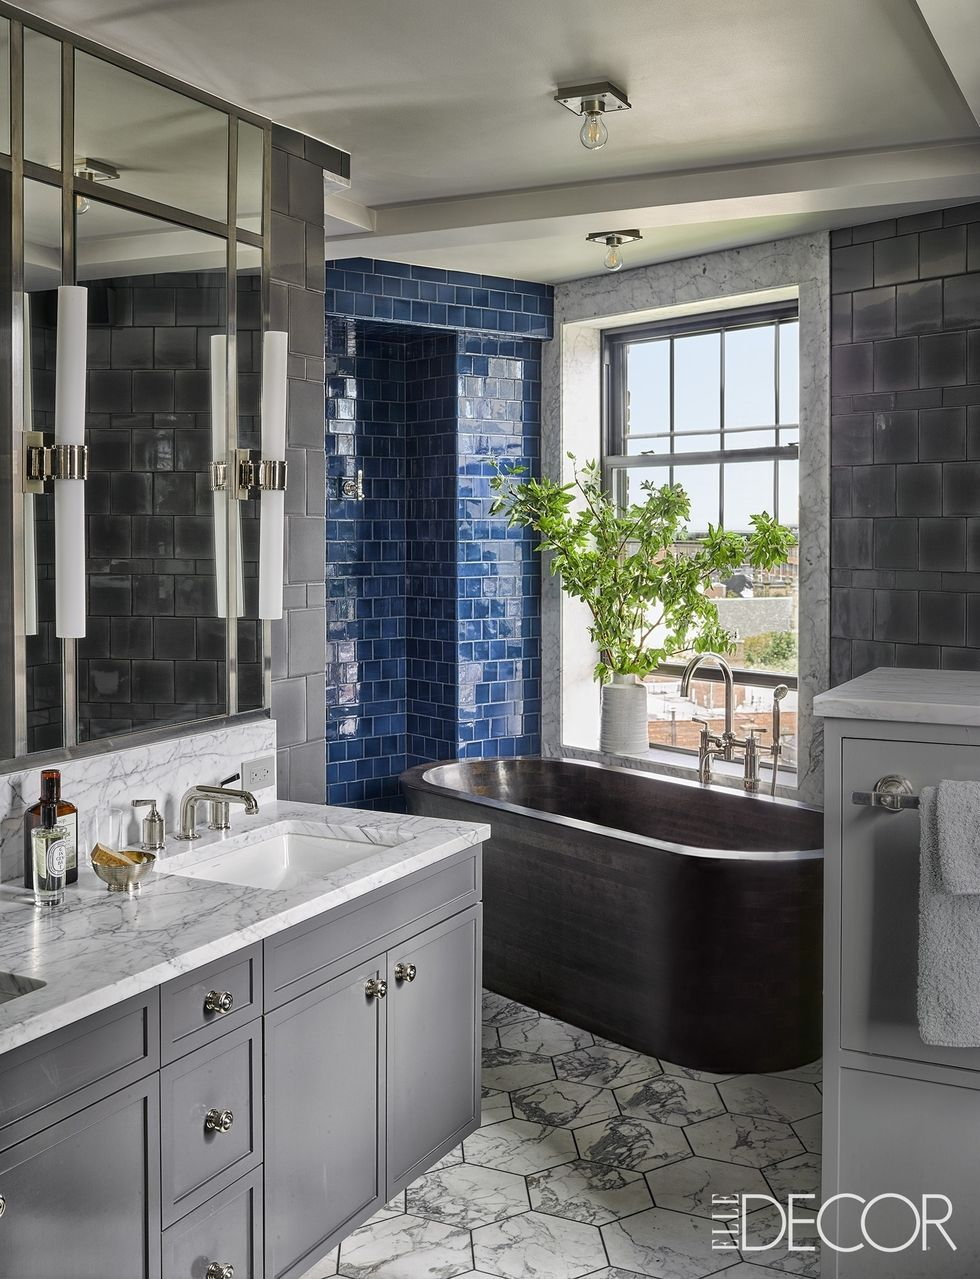 When It Comes To Bathroom Design, Weu0027ve Got Inspiration In Droves. From  Petite Powder Rooms To Palatial Master Baths, Weu0027ve Seen It All.